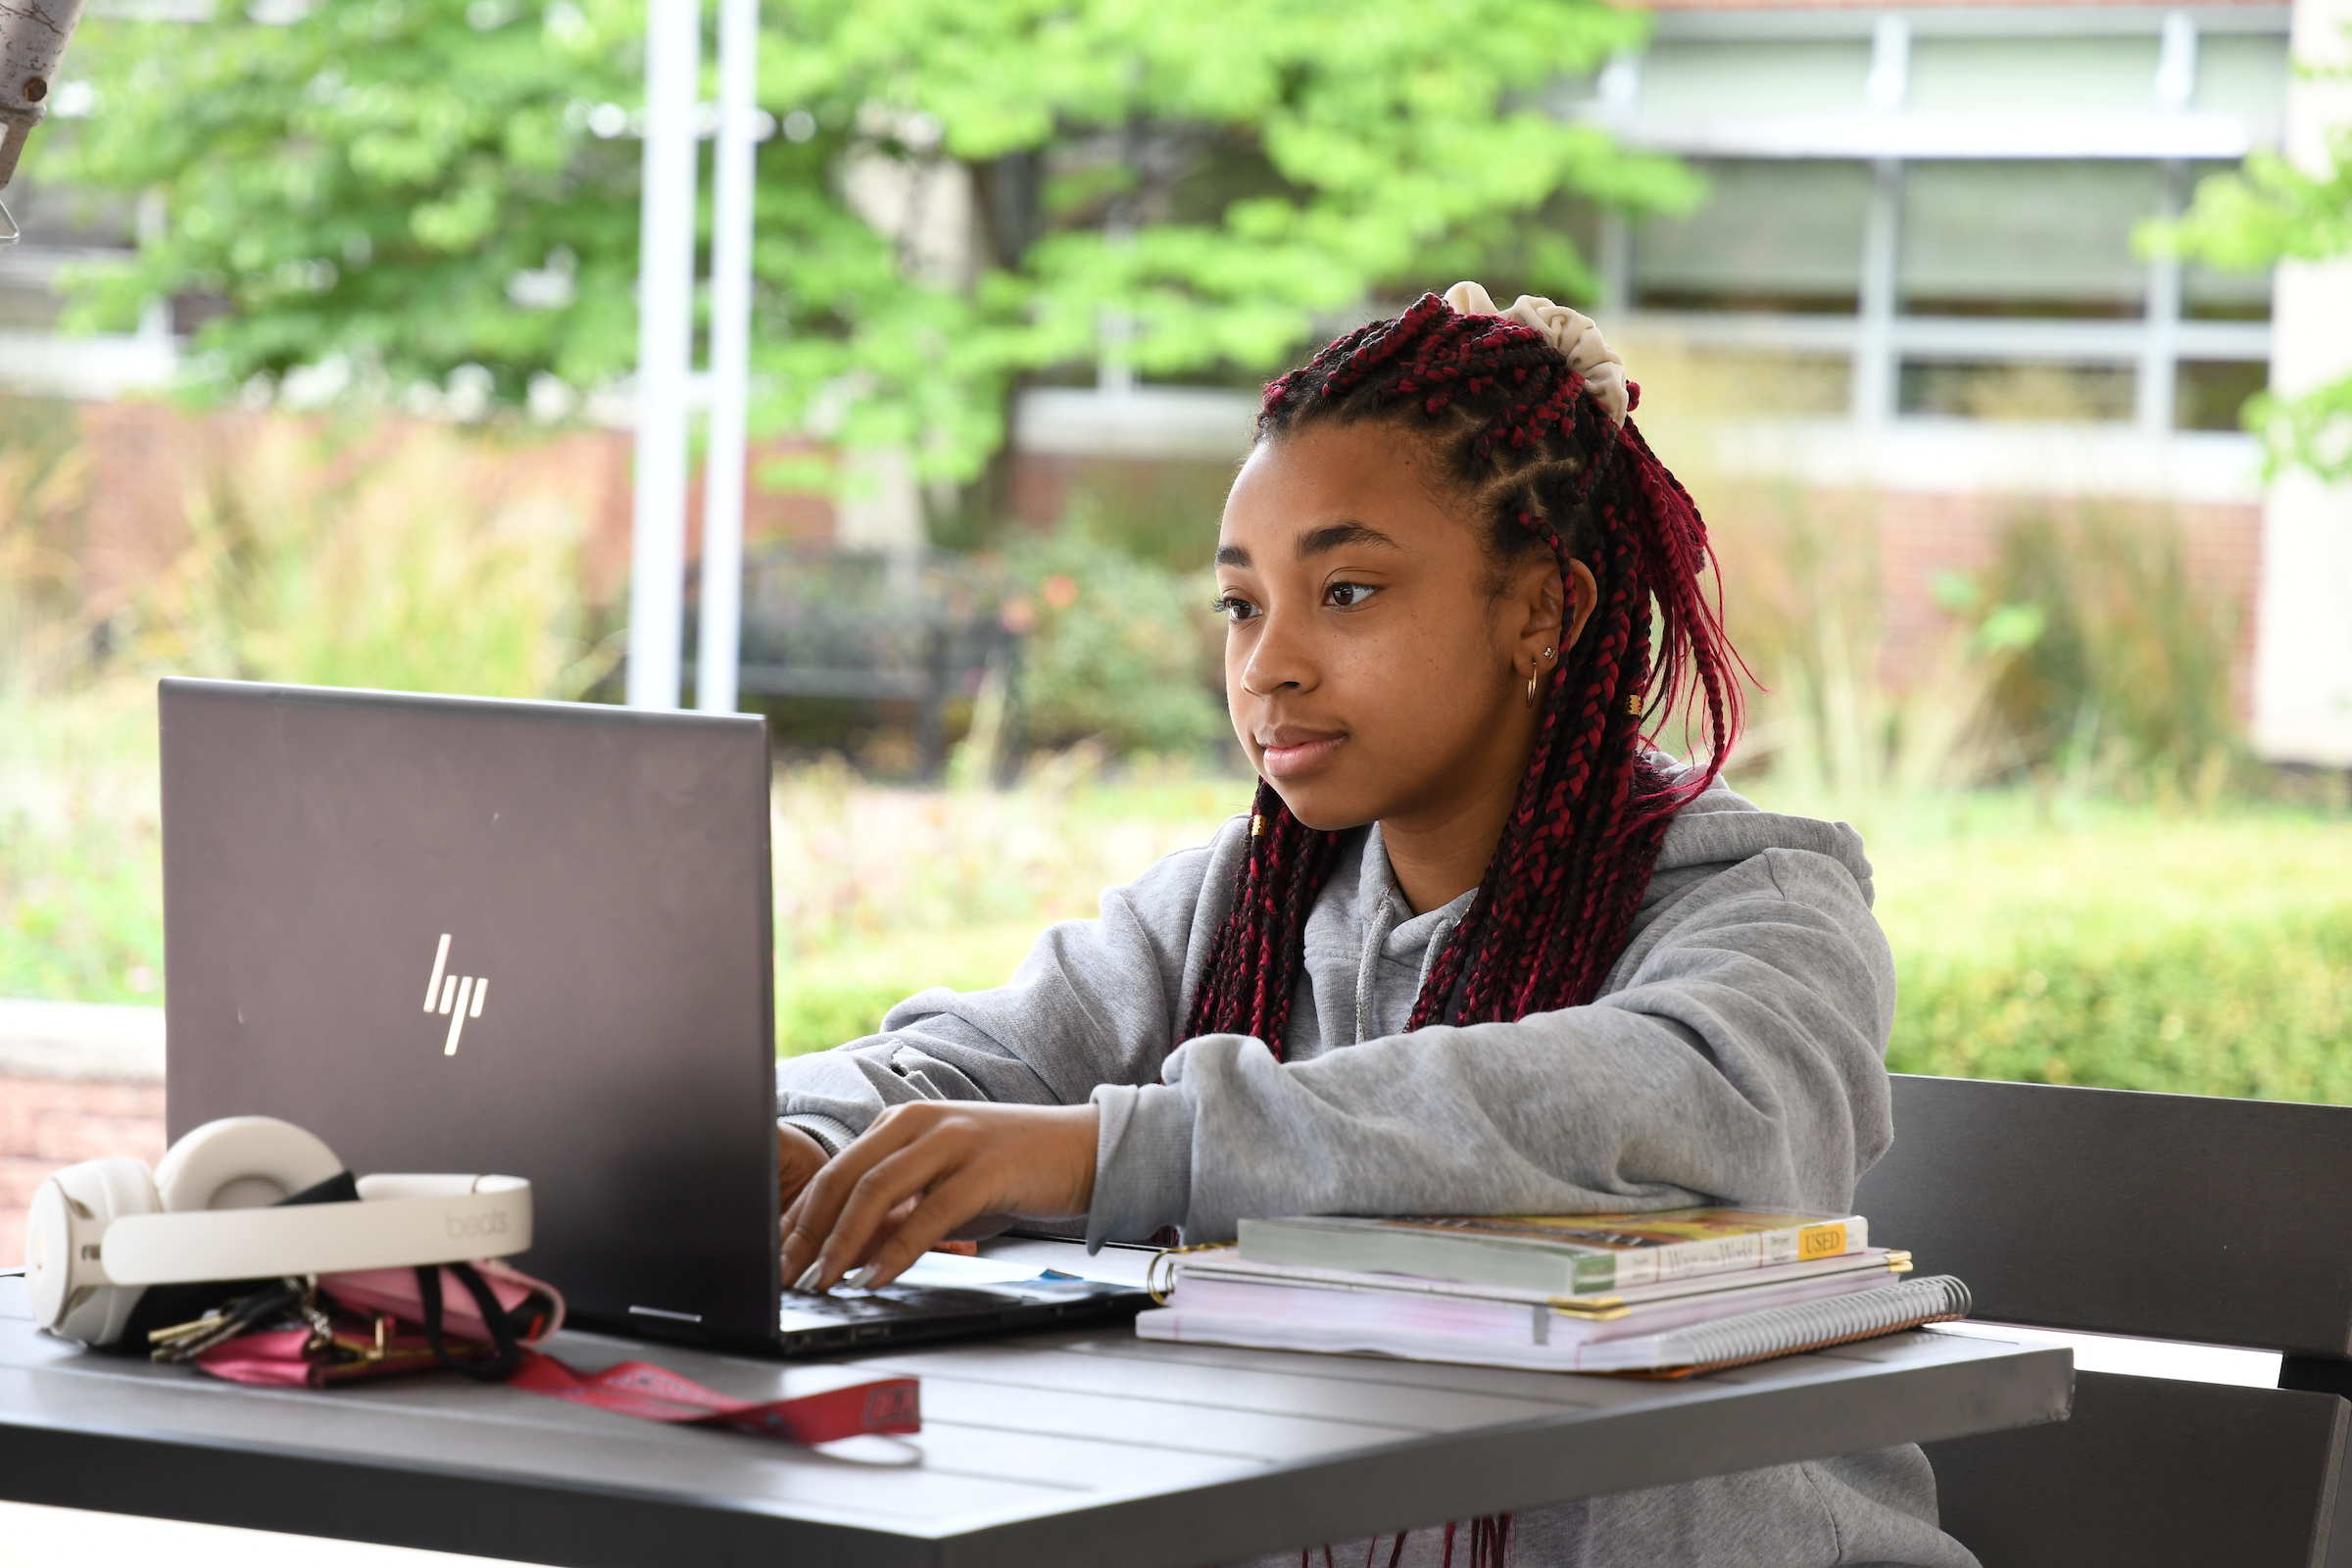 Student working outside on laptop